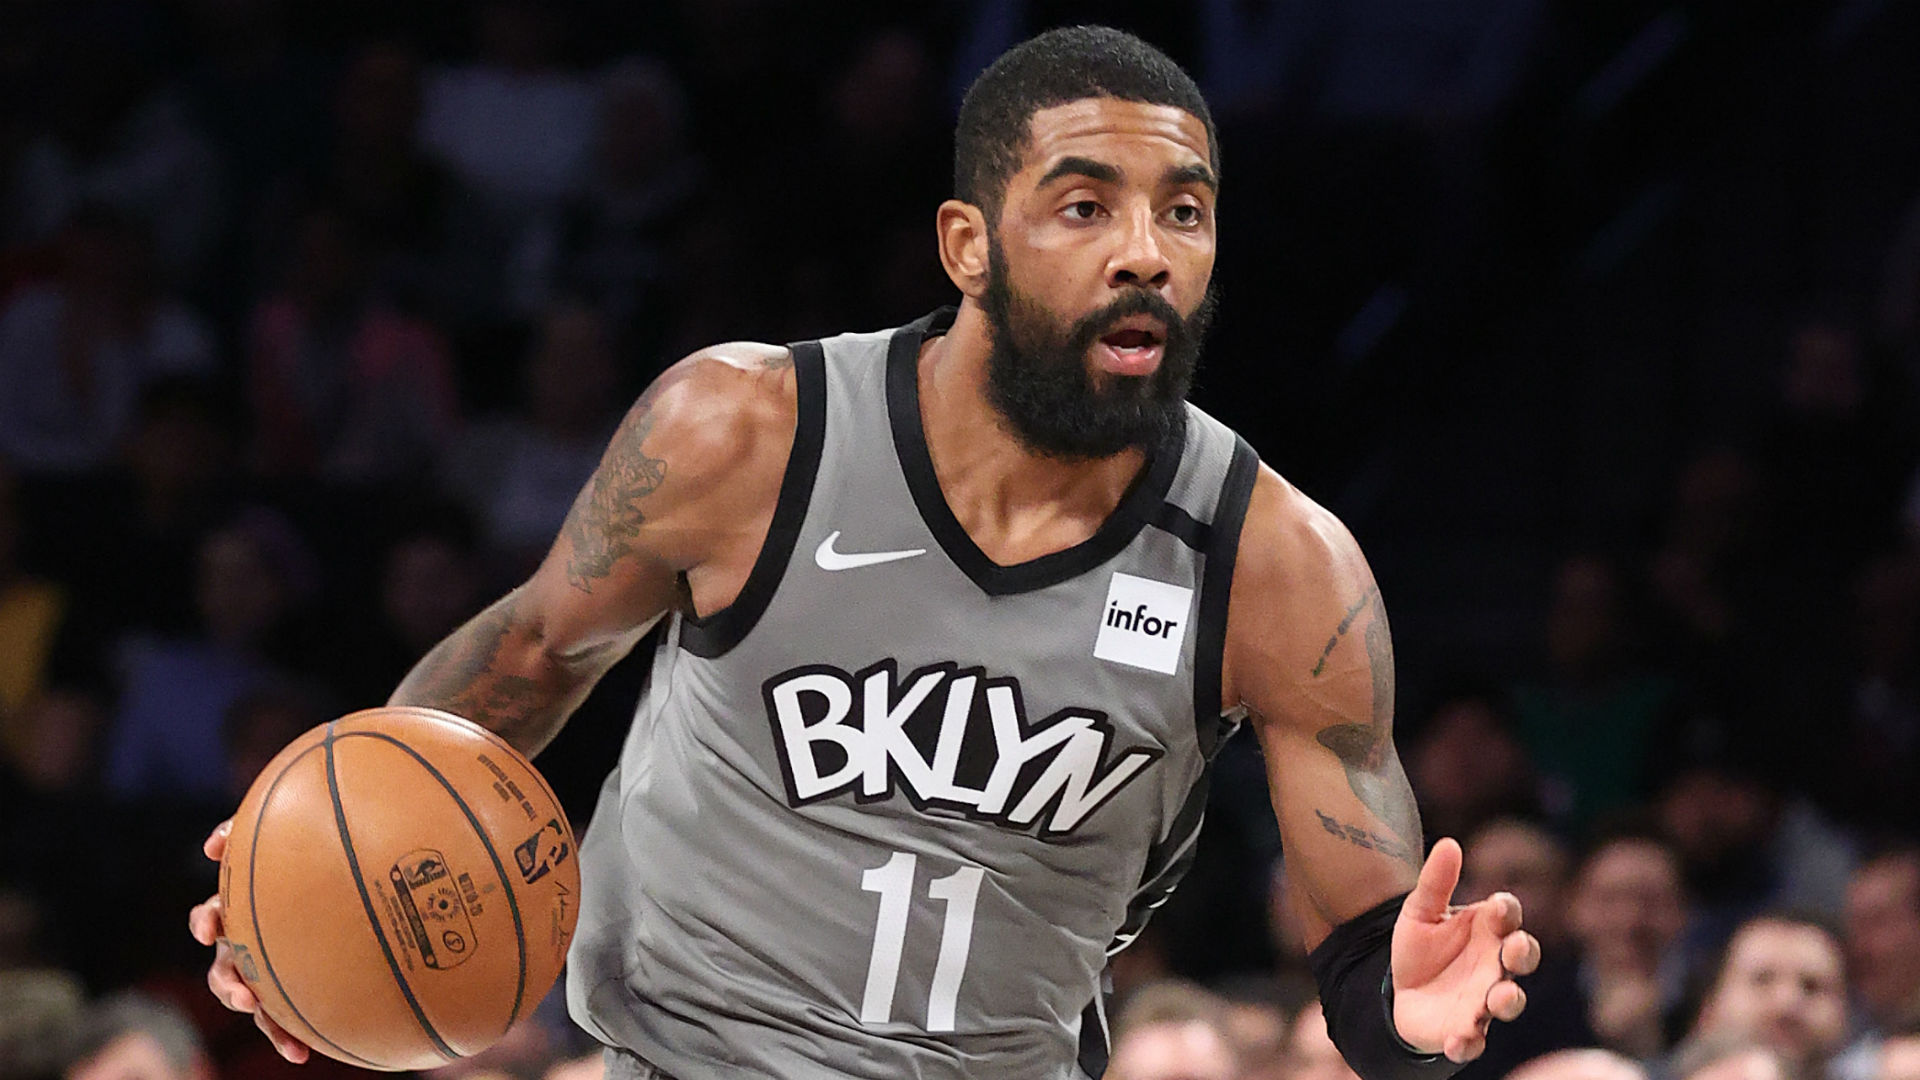 Kyrie Irving undergoes successful shoulder surgery